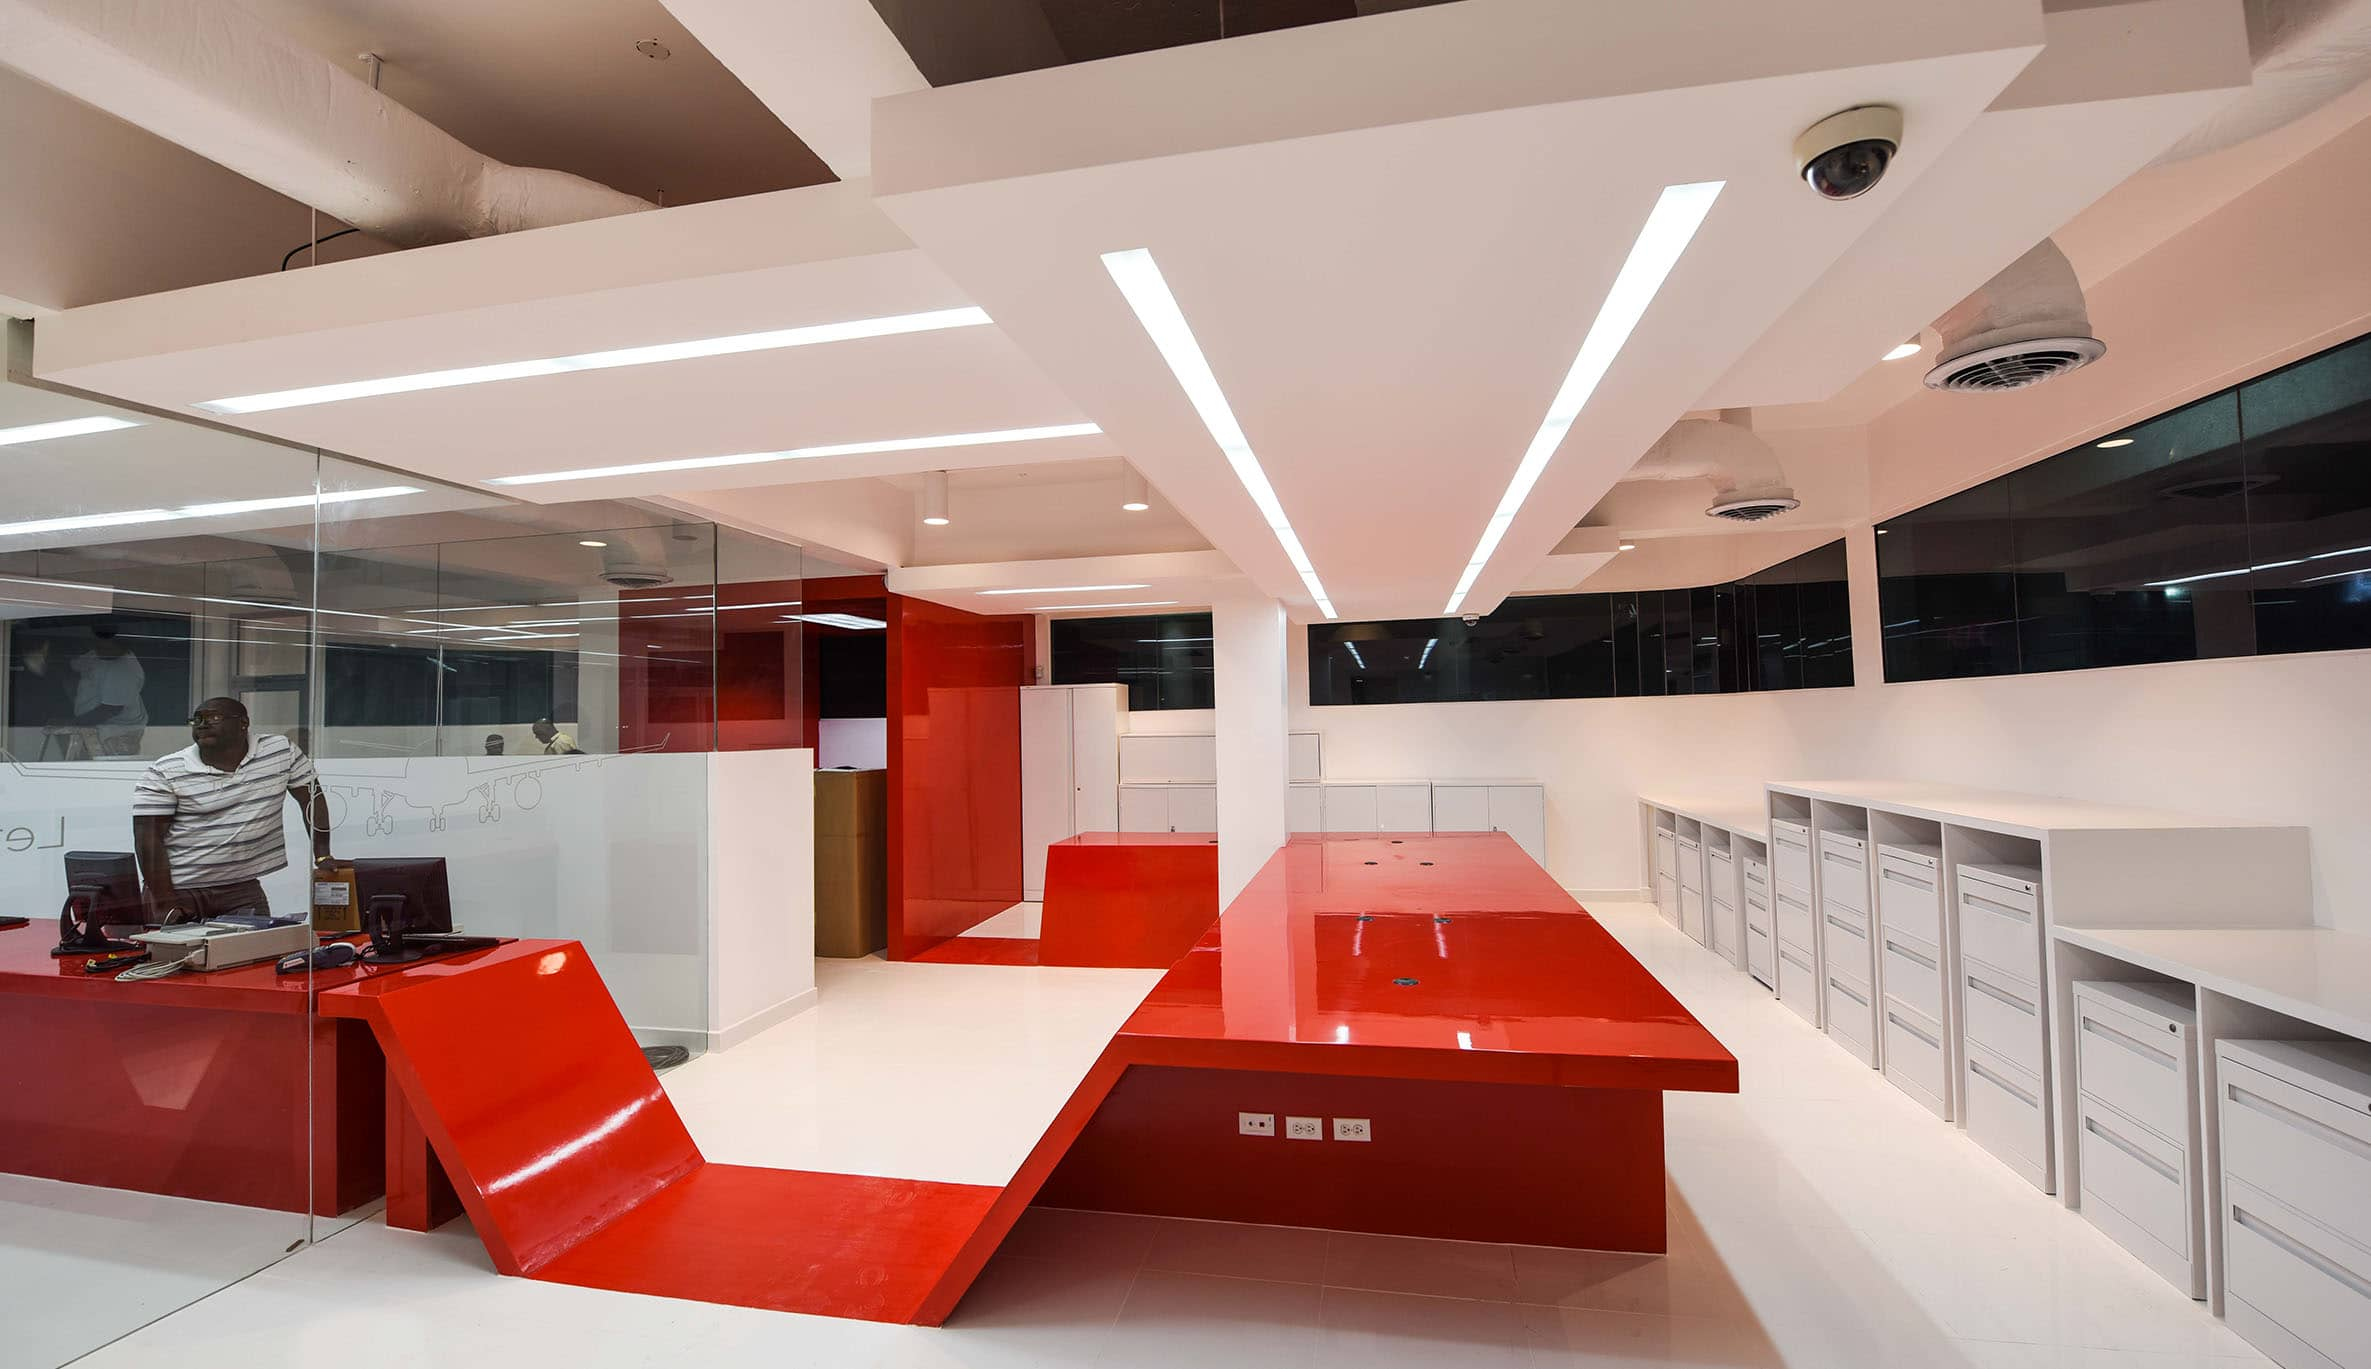 Virgin atlantic sales office argo development studio for Sales office design